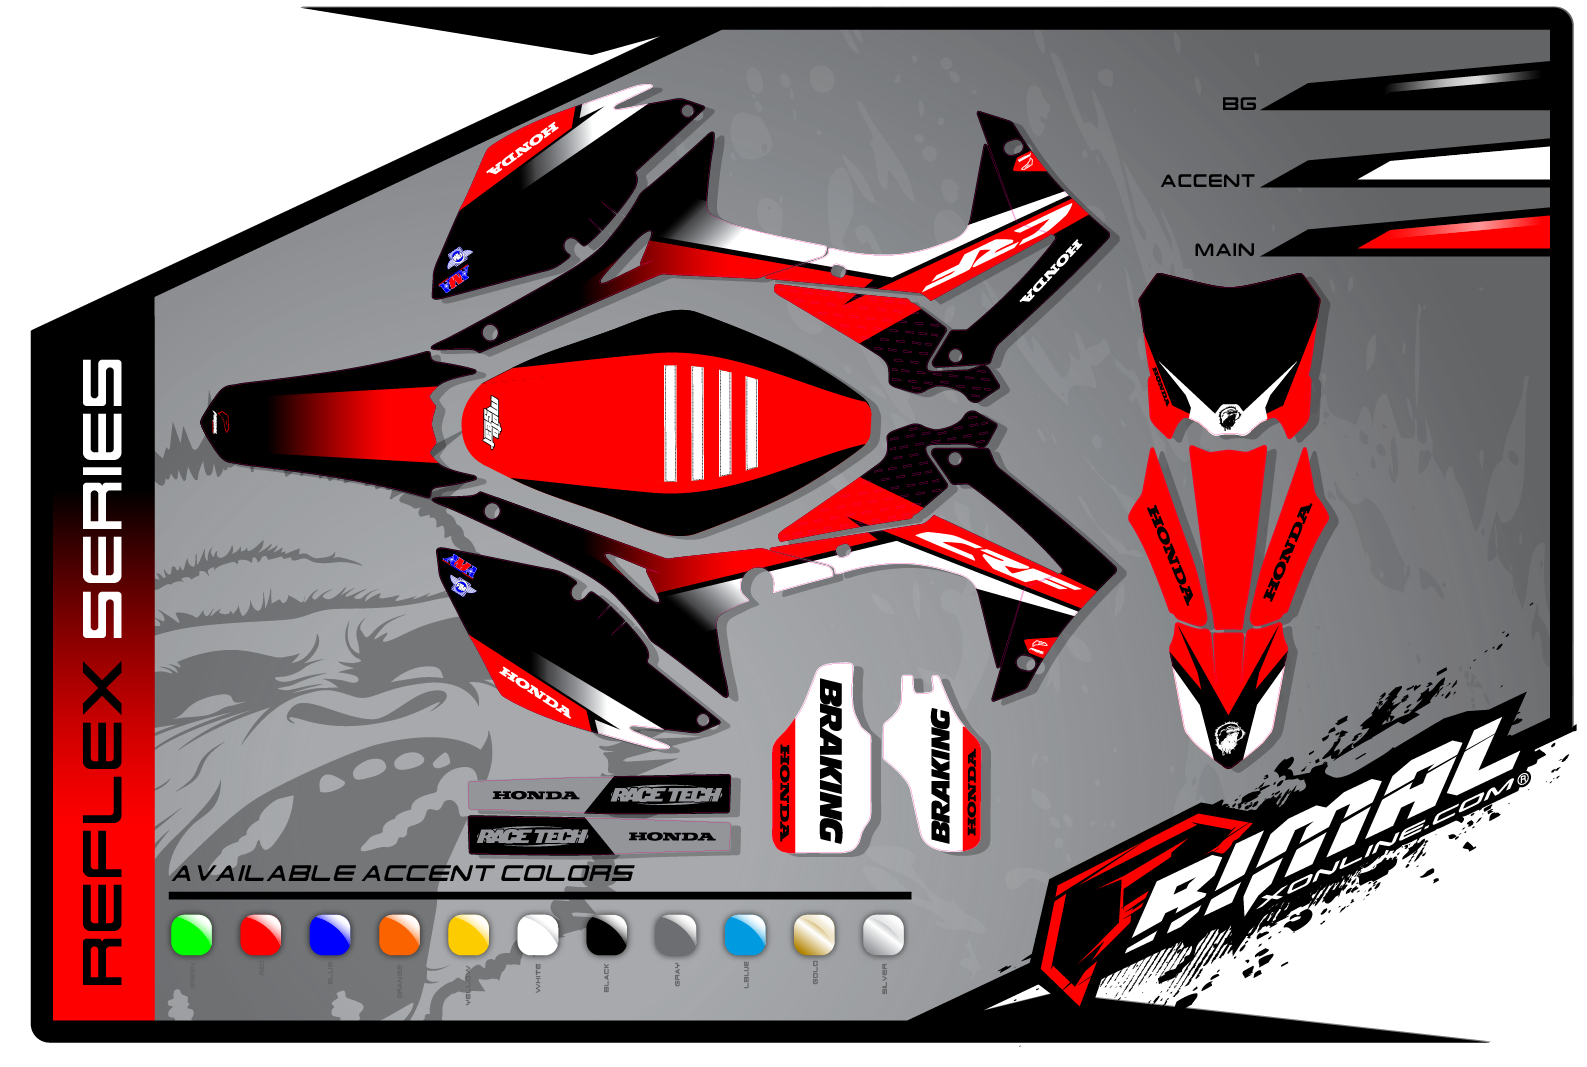 primal-x-motorsports-mx-graphics-honda-crf250-crf450-reflex-series-motocross-graphics